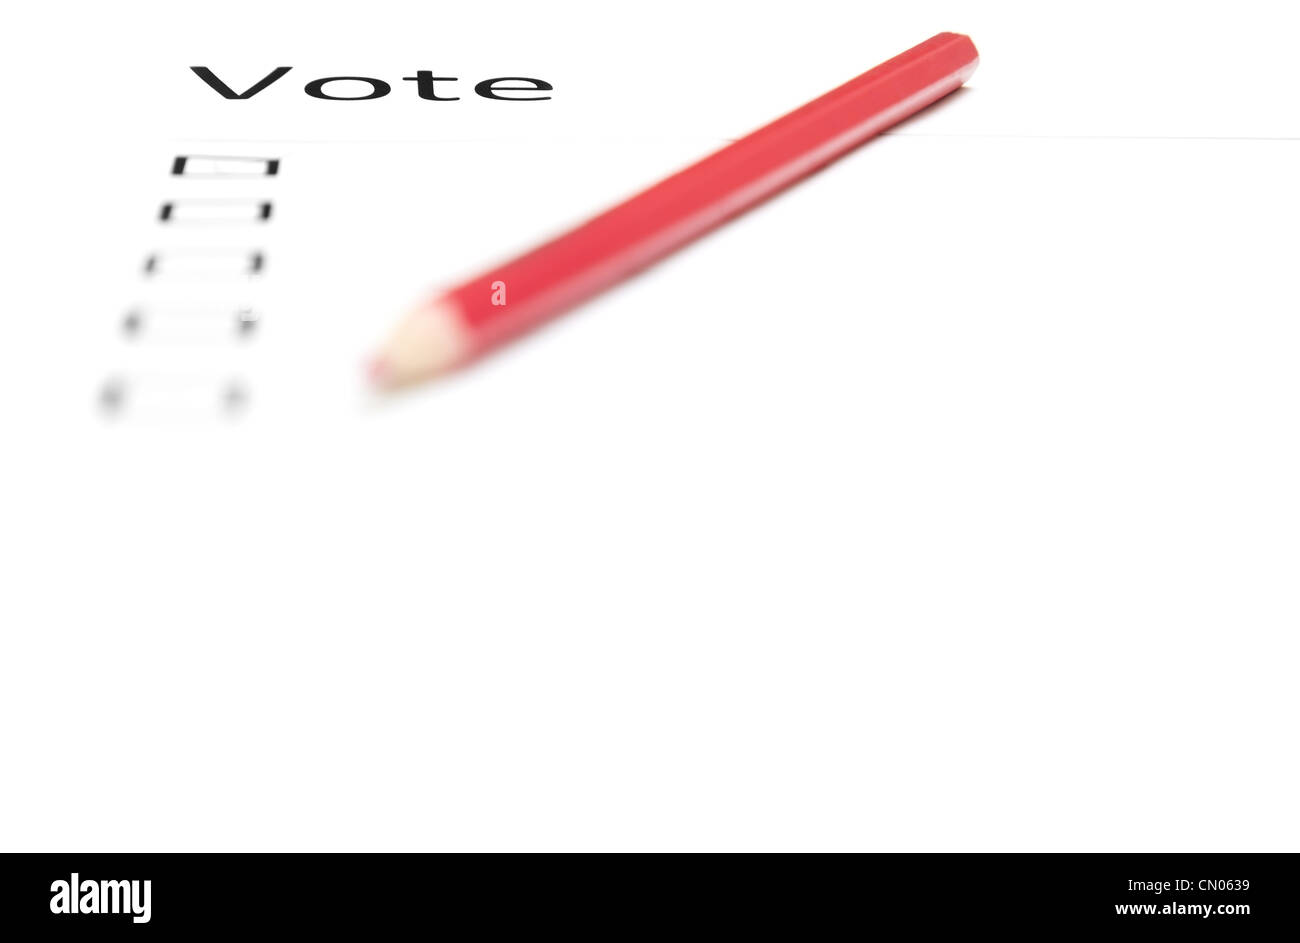 Voting bulletin with red pencil to make choice - Stock Image